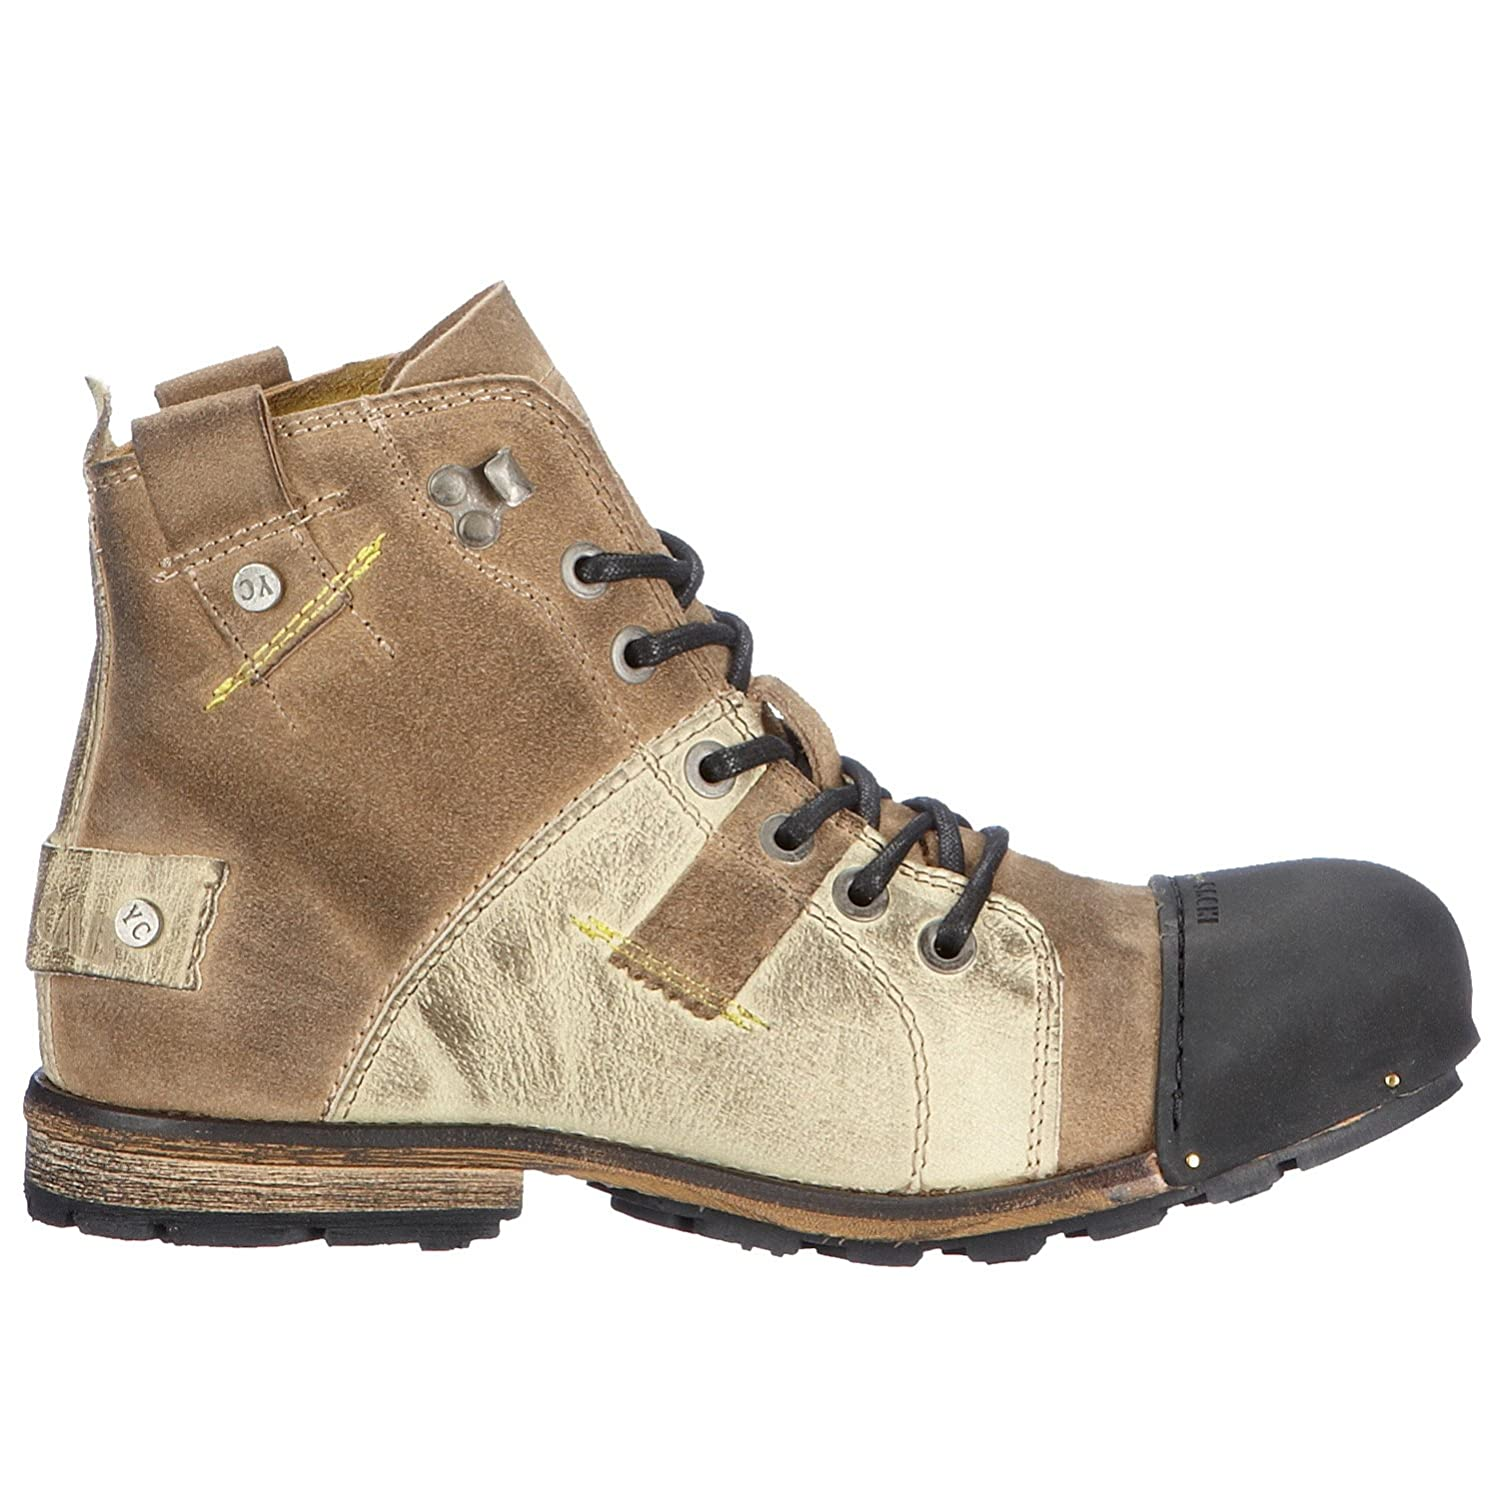 Amazon.com | Yellow Cab Boots - Industrial - Beige - Y 15012 Gre:45 | Boots